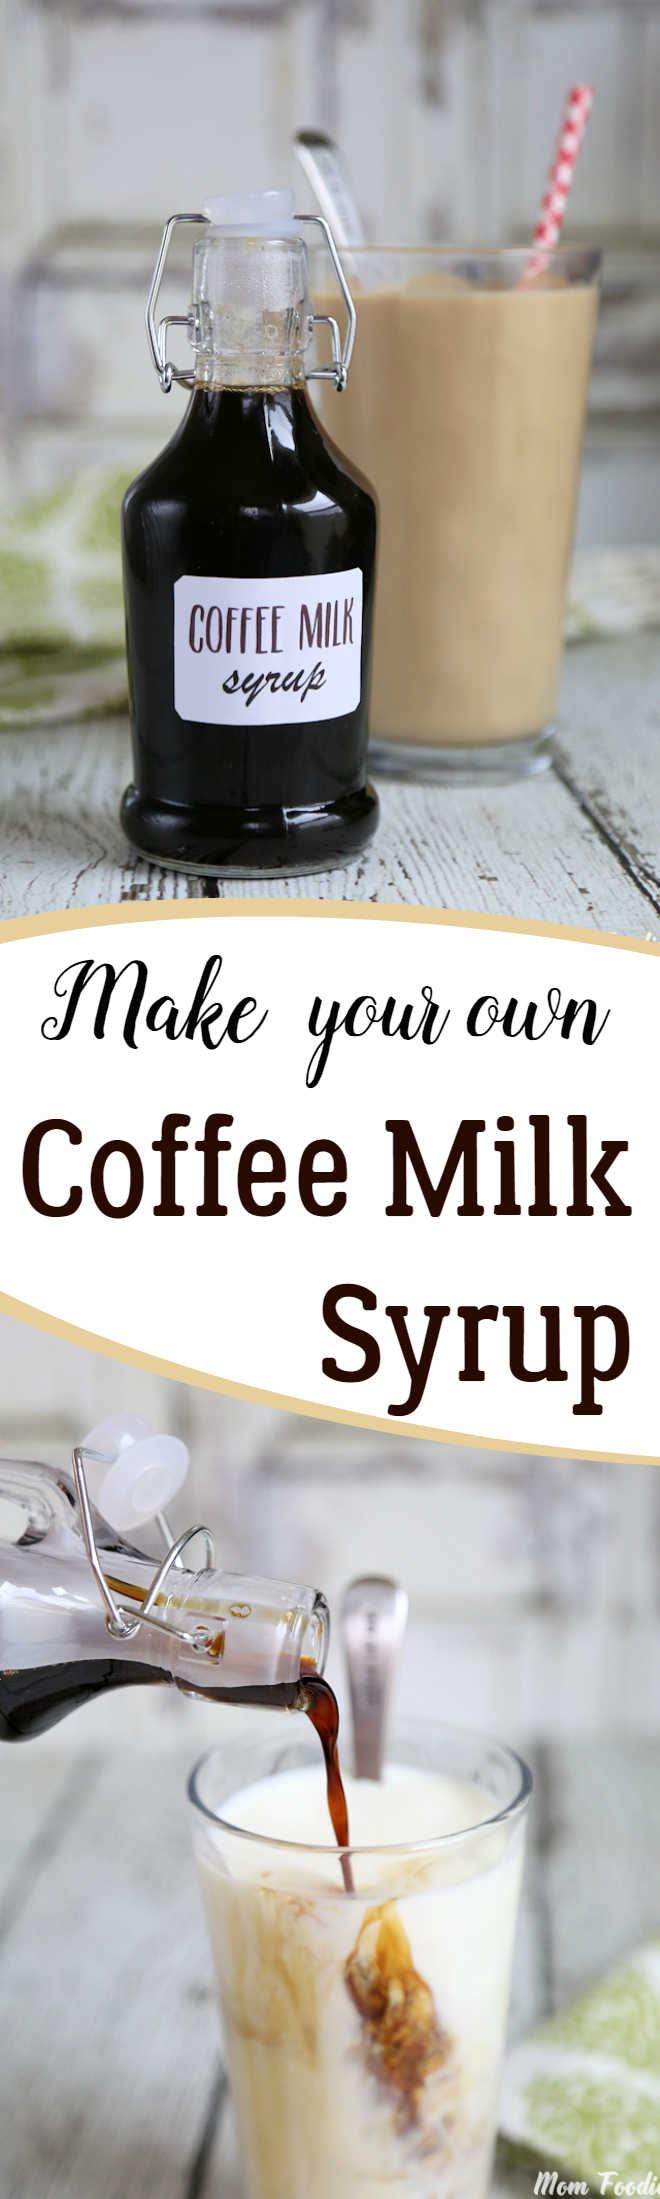 Coffee Milk Syrup Recipe & Free Printable Labels